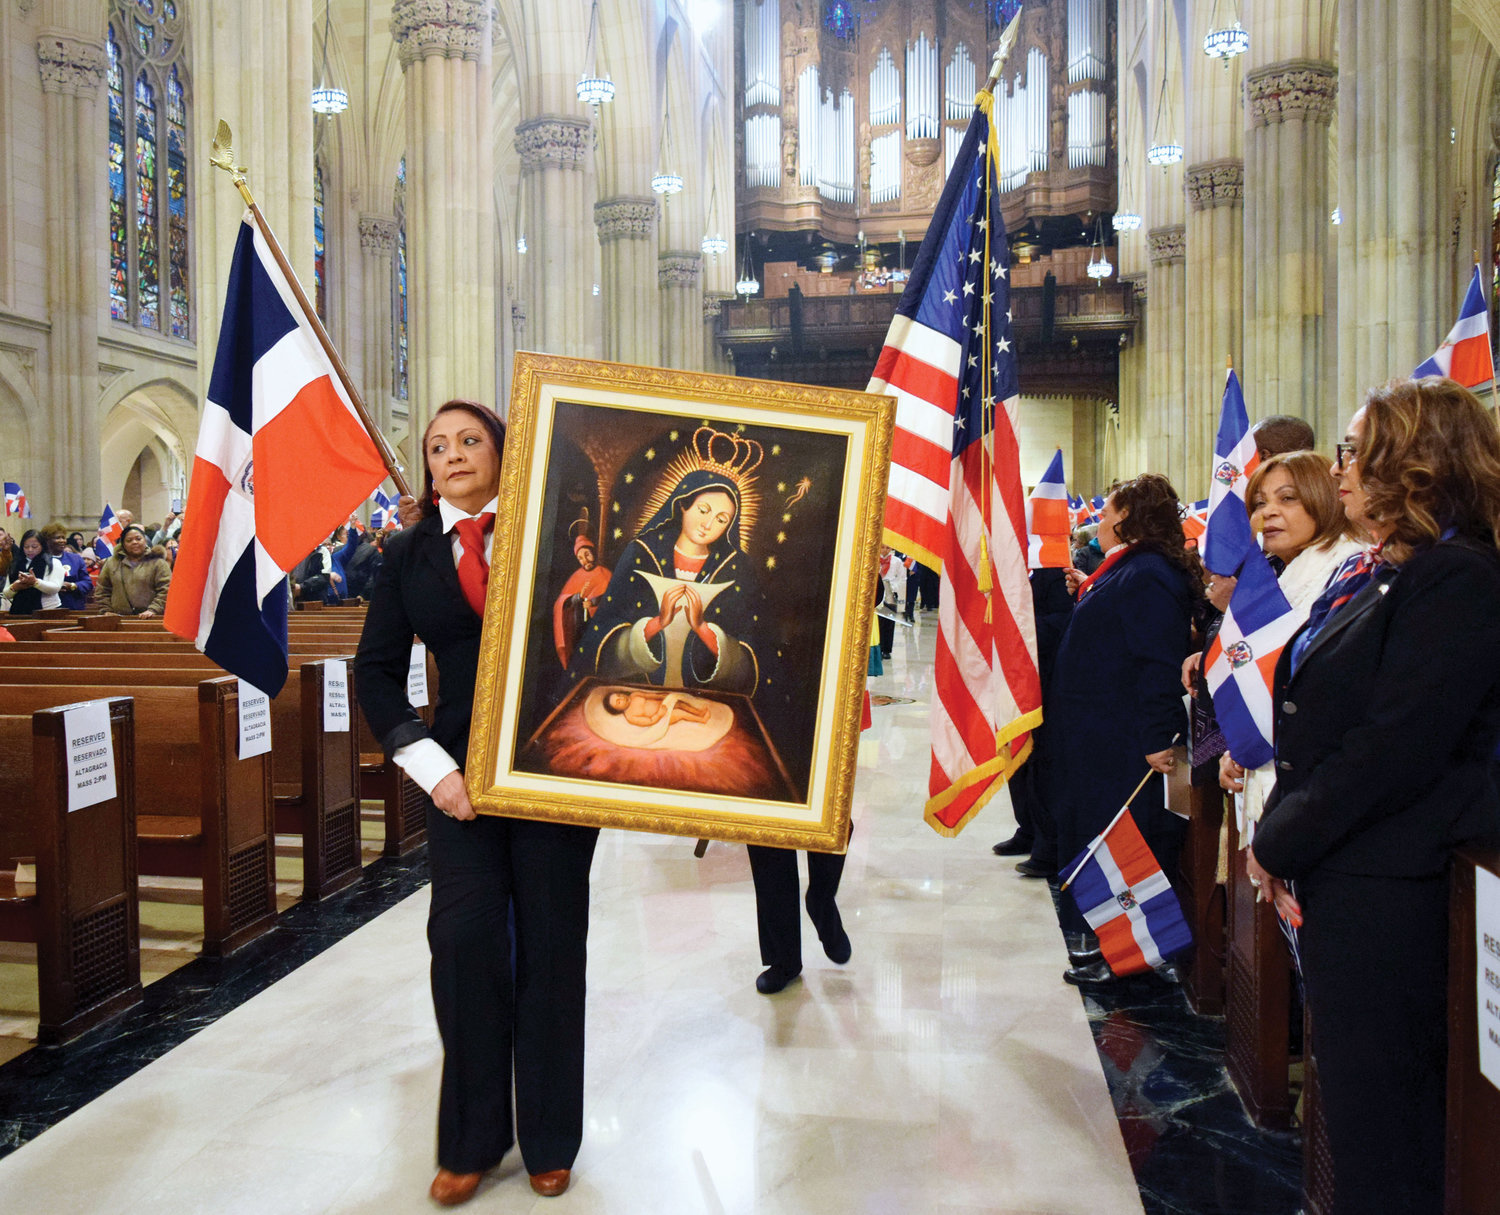 Archbishop Francisco Ozoria Acosta, of the Archdiocese of Santo Domingo, celebrated the annual Our Lady of Altagracia Mass Jan. 13 at St. Patrick's Cathedral. An image of Our Lady of Altagracia, above, is carried during the entrance procession.